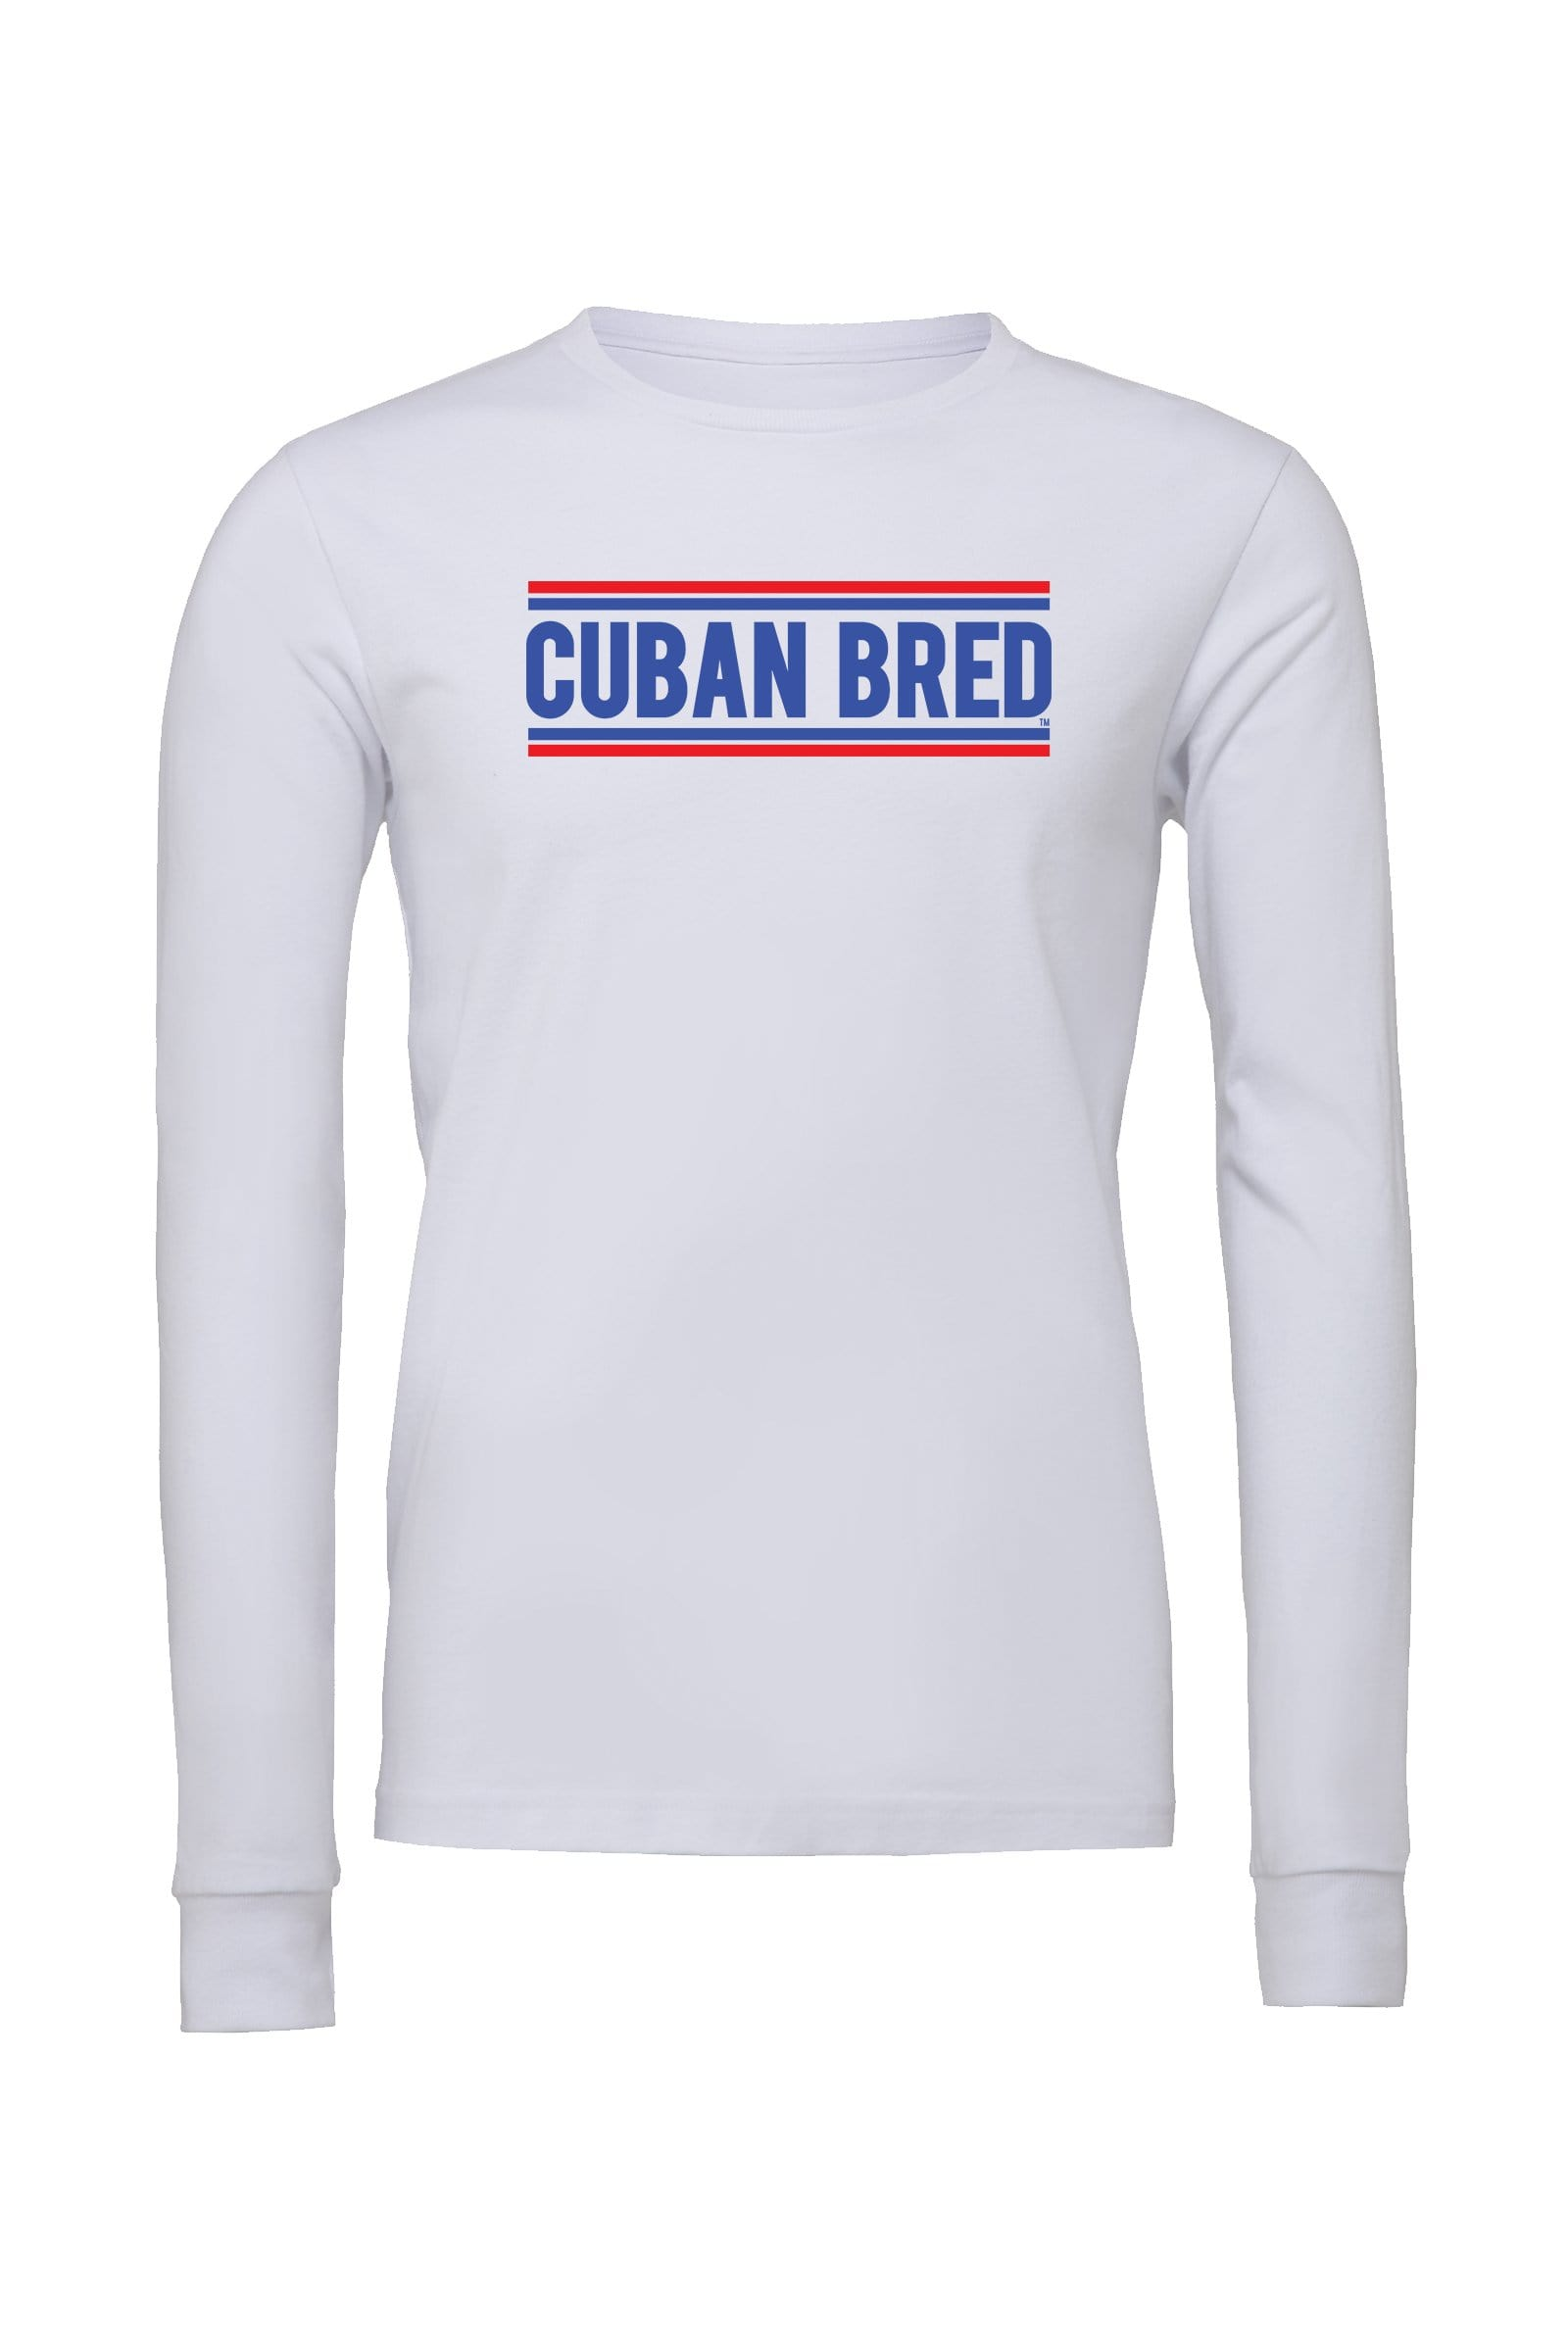 Cuban-Bred™-Long-Sleeve-Unisex.jpg